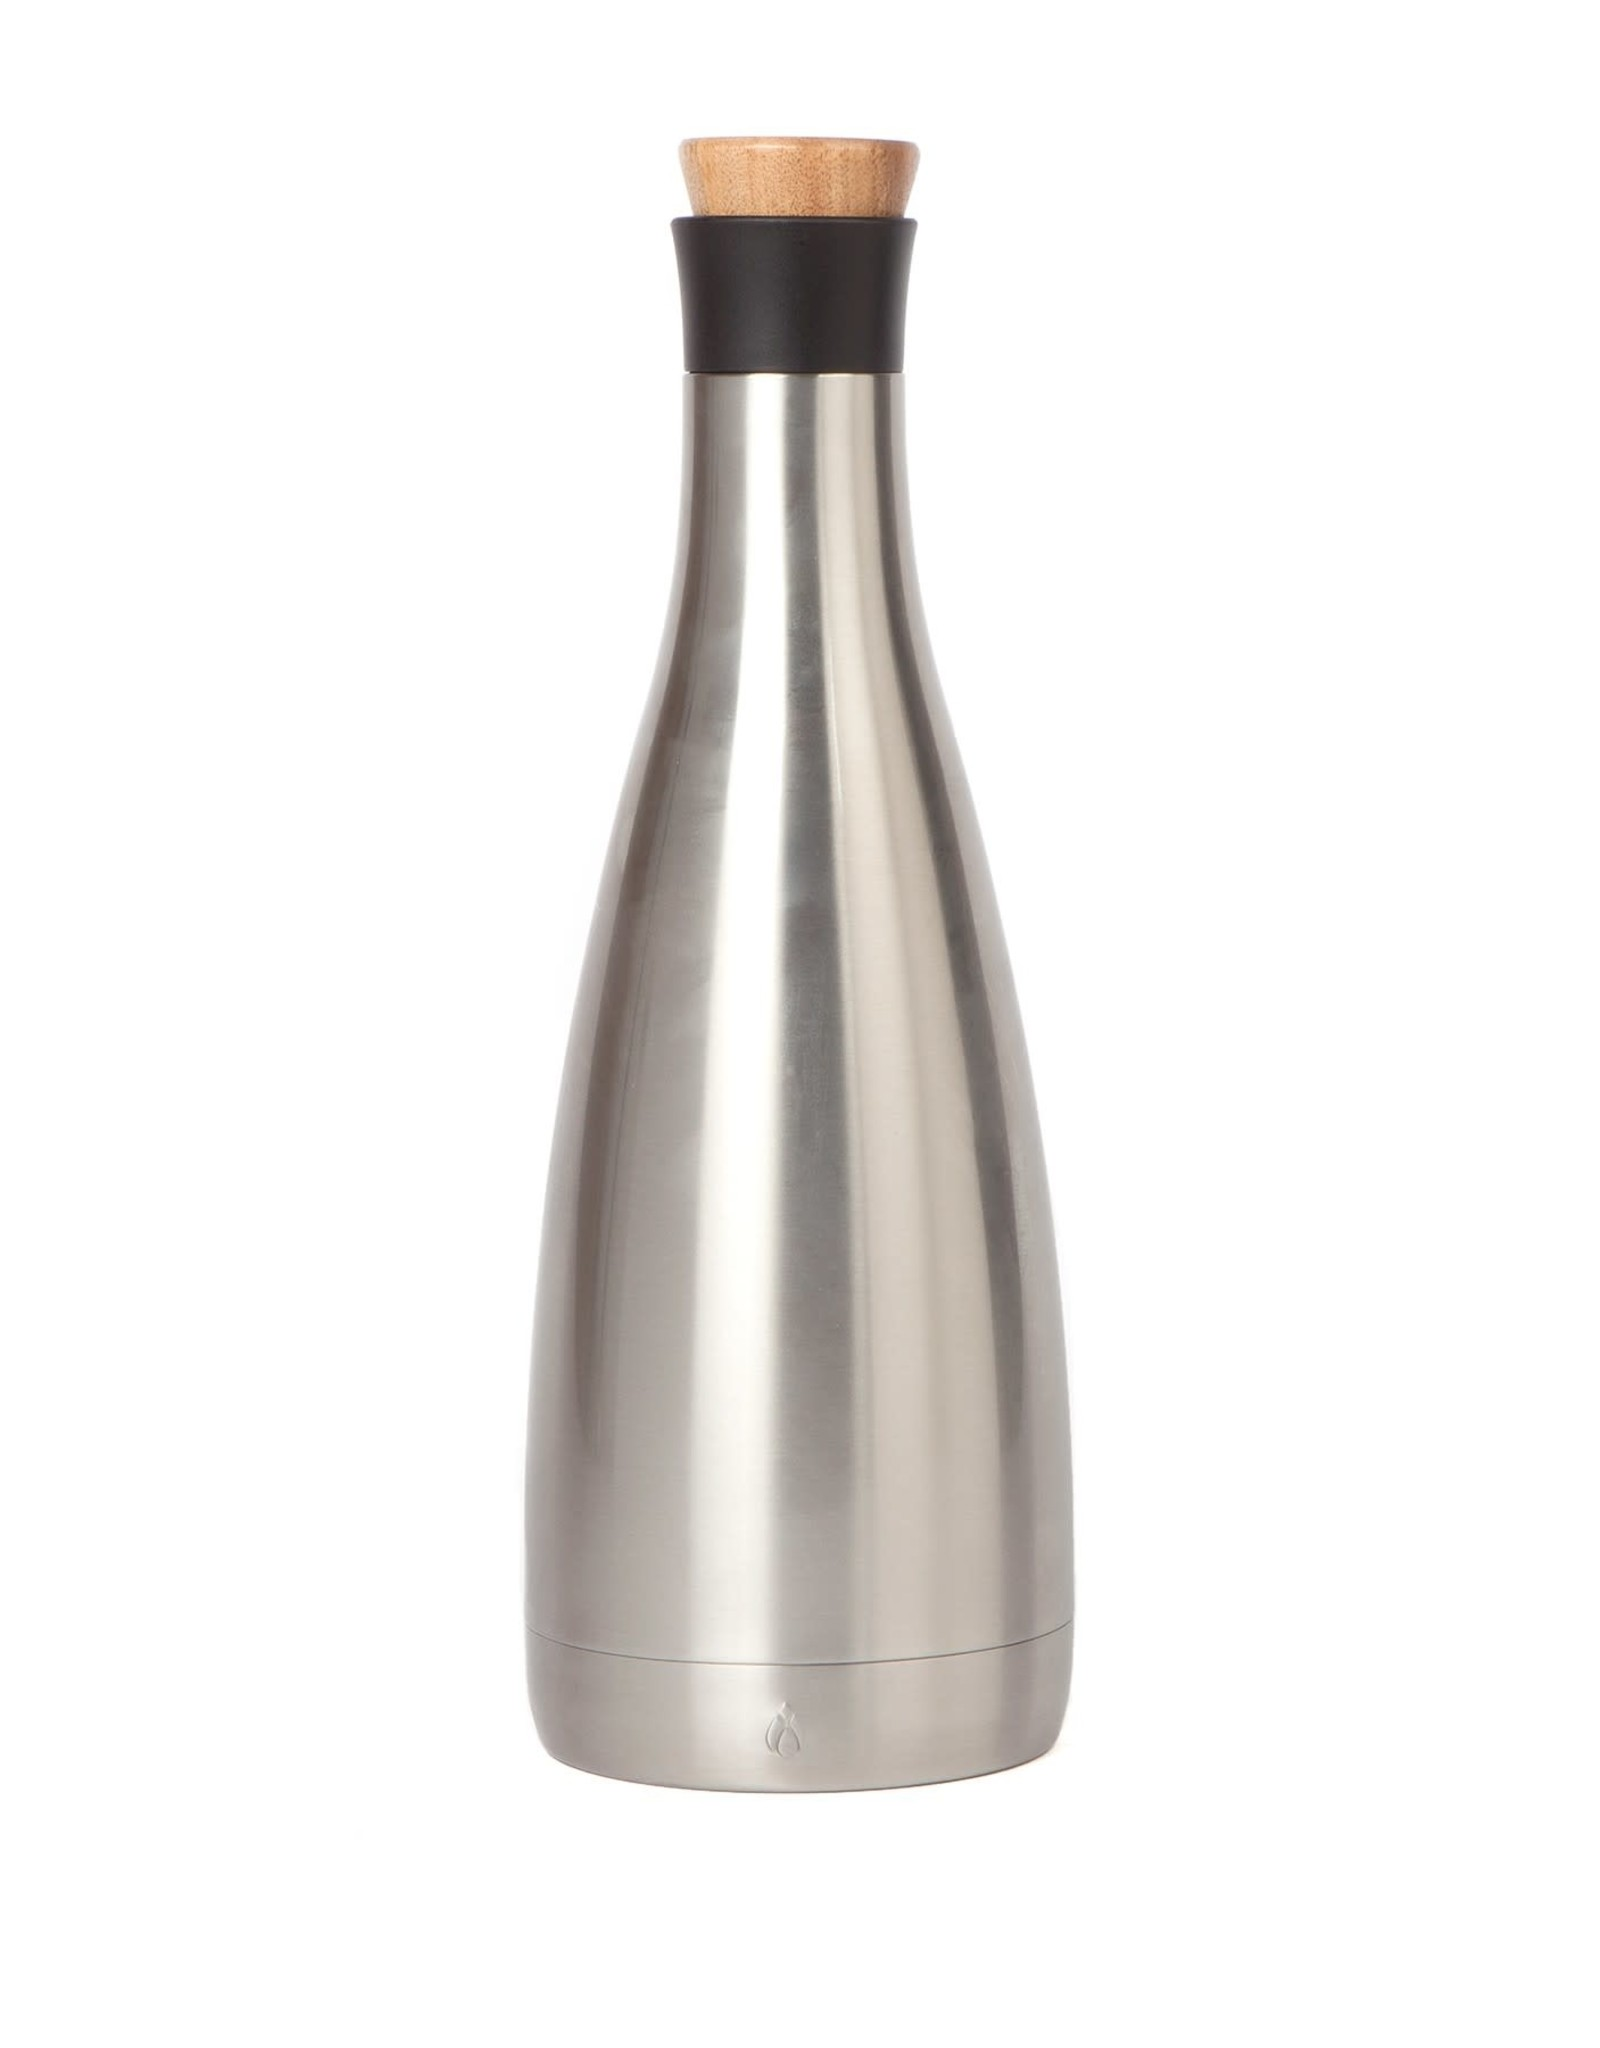 Manna CORE 50oz Carafe - Stainless Steel